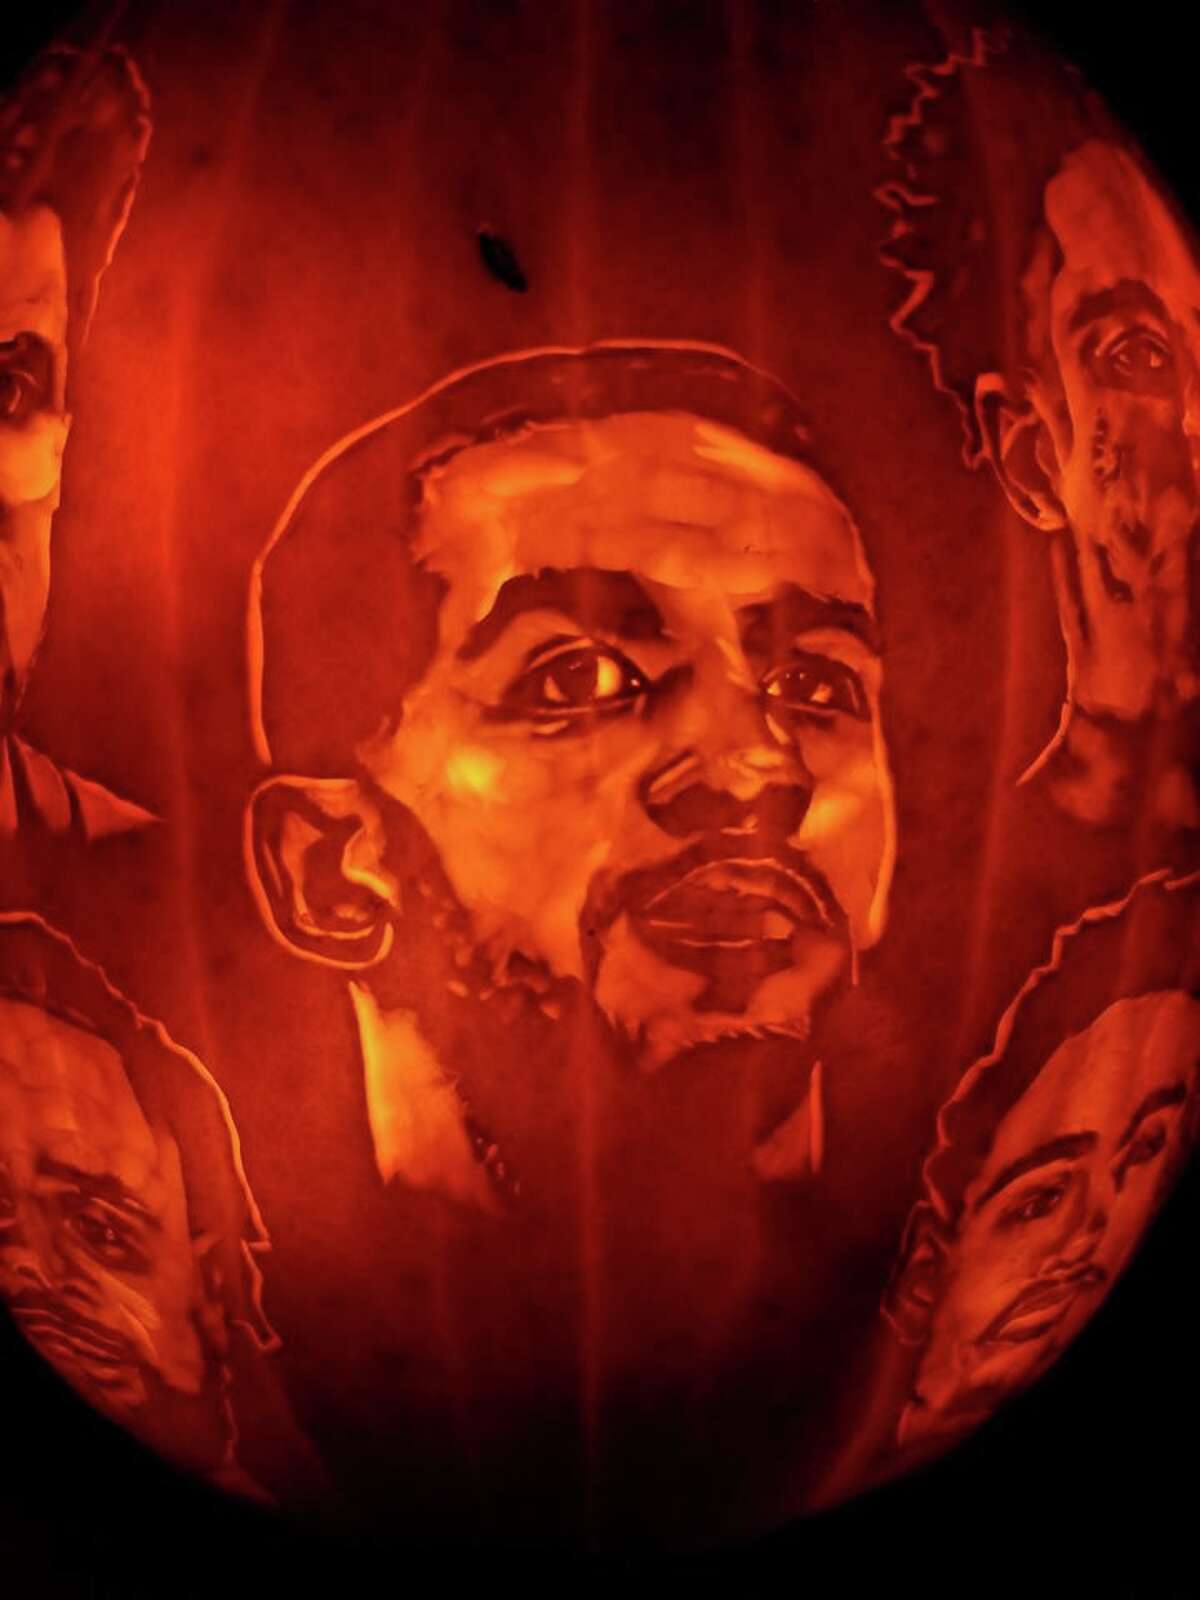 Arthur Alaquinez is San Antonio's standout pumpkin carving artist this fall. He grabbed social media attention in early October when he created an impressive Manu Ginobili carving. This week, he carved the Spurs starting roster.